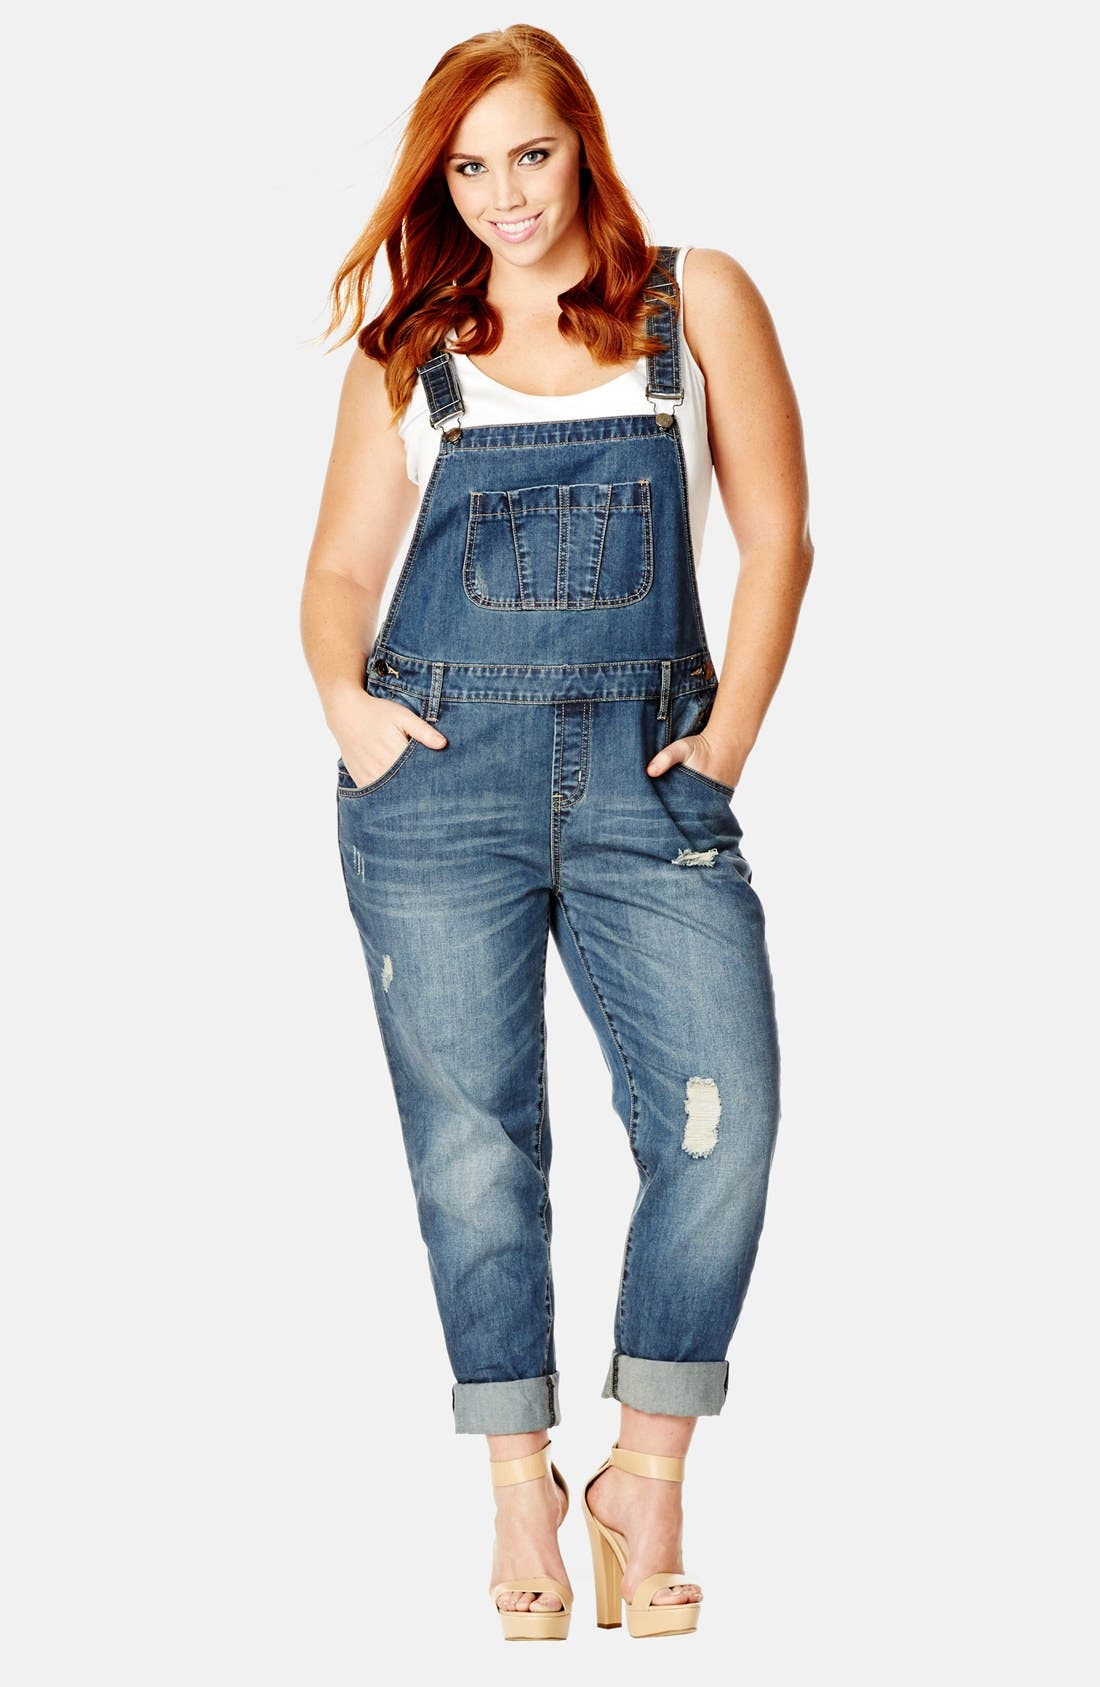 City Chic 'Over It All' Distressed Denim Overalls (Plus Size)